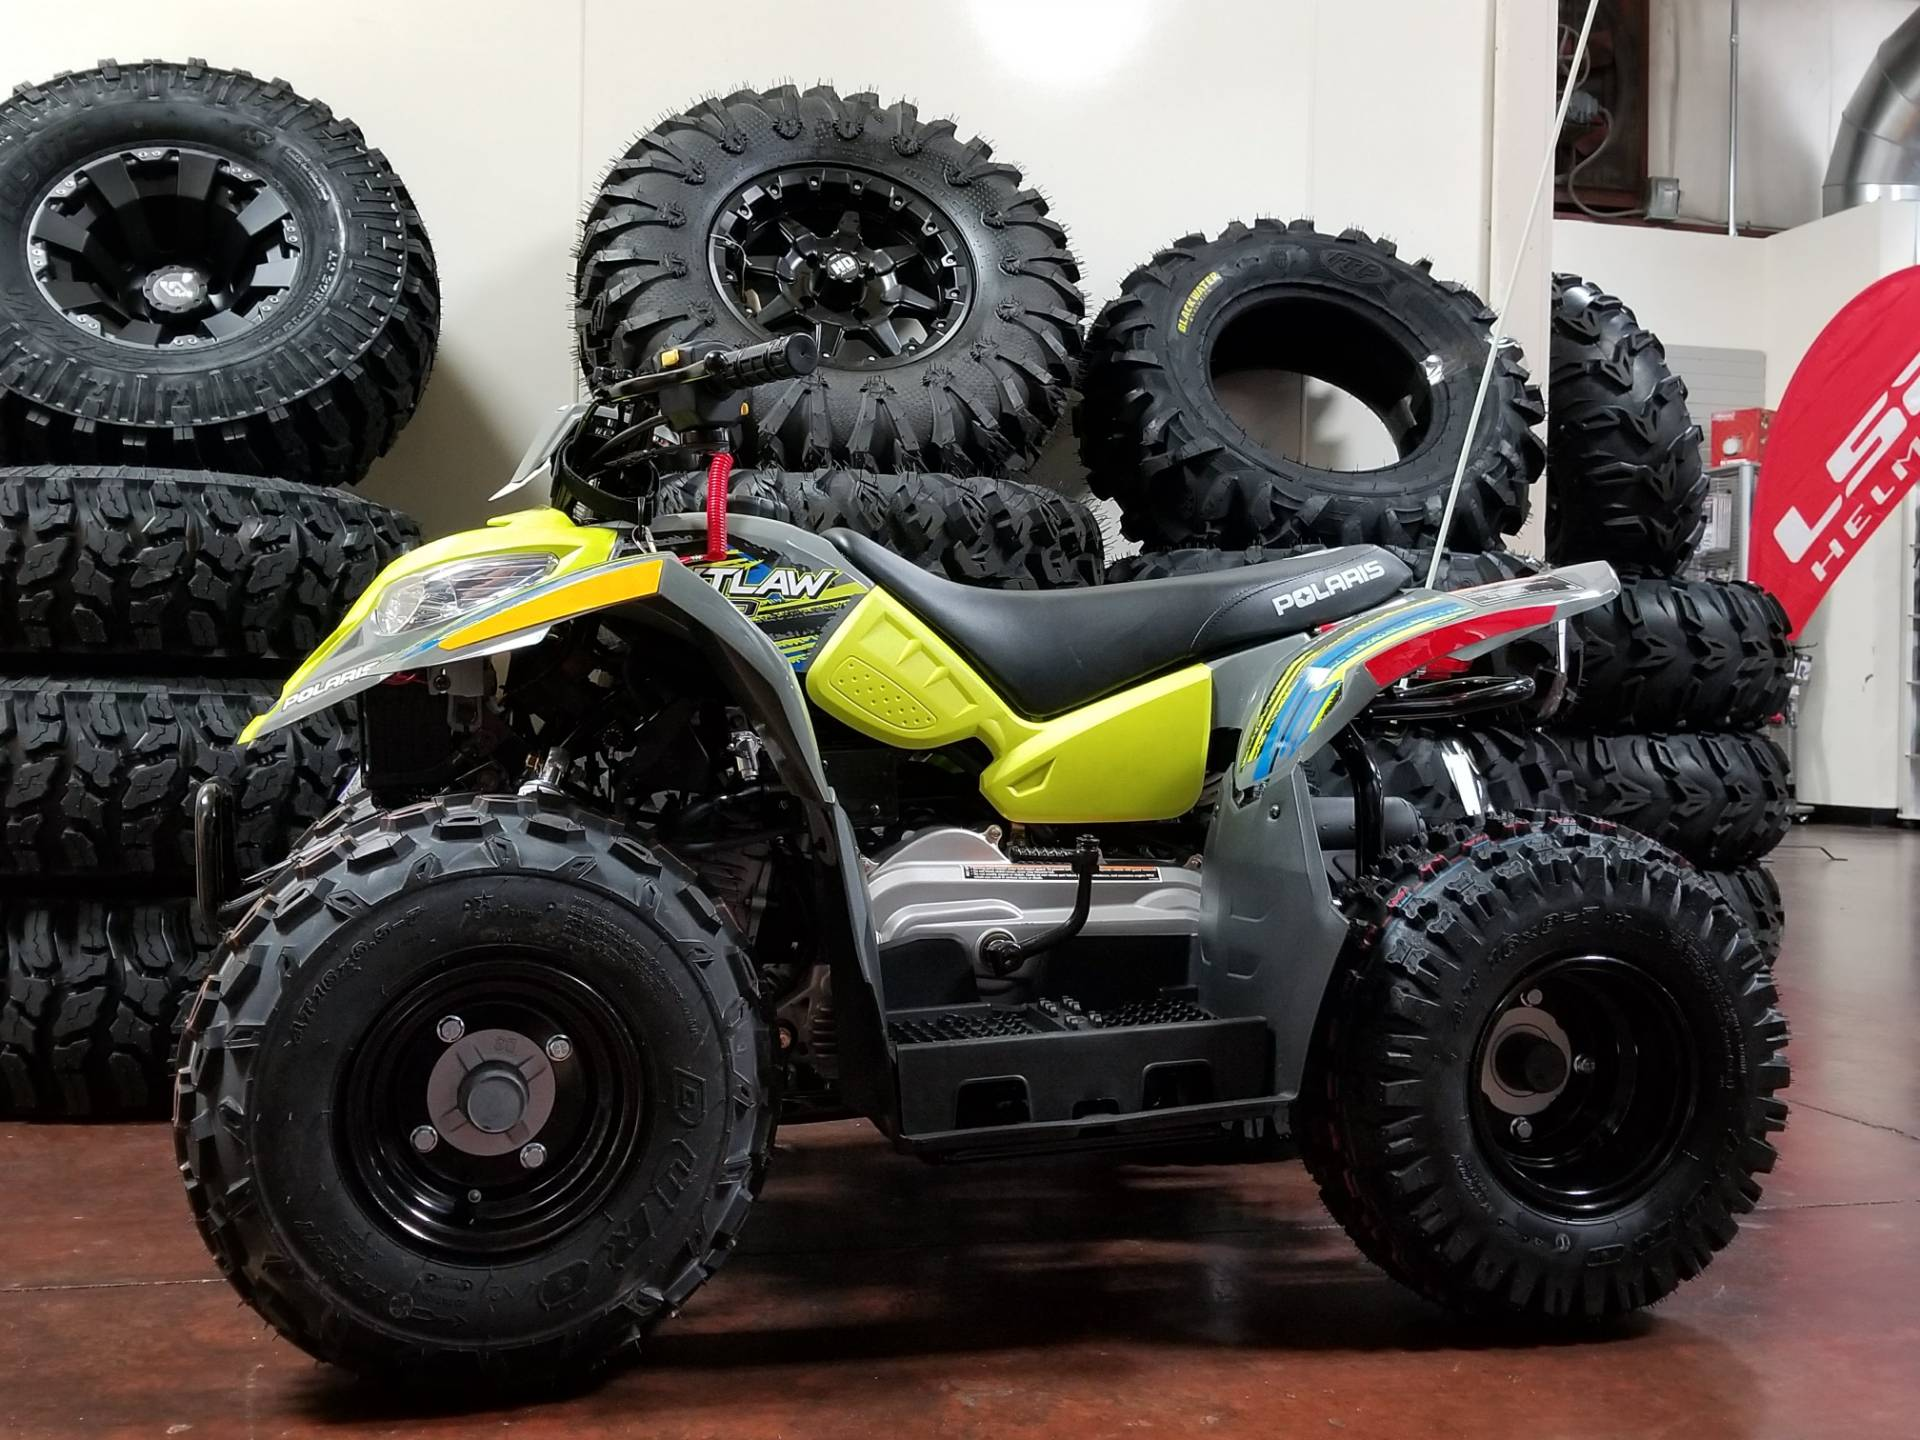 2019 Polaris Outlaw 50 in Statesville, North Carolina